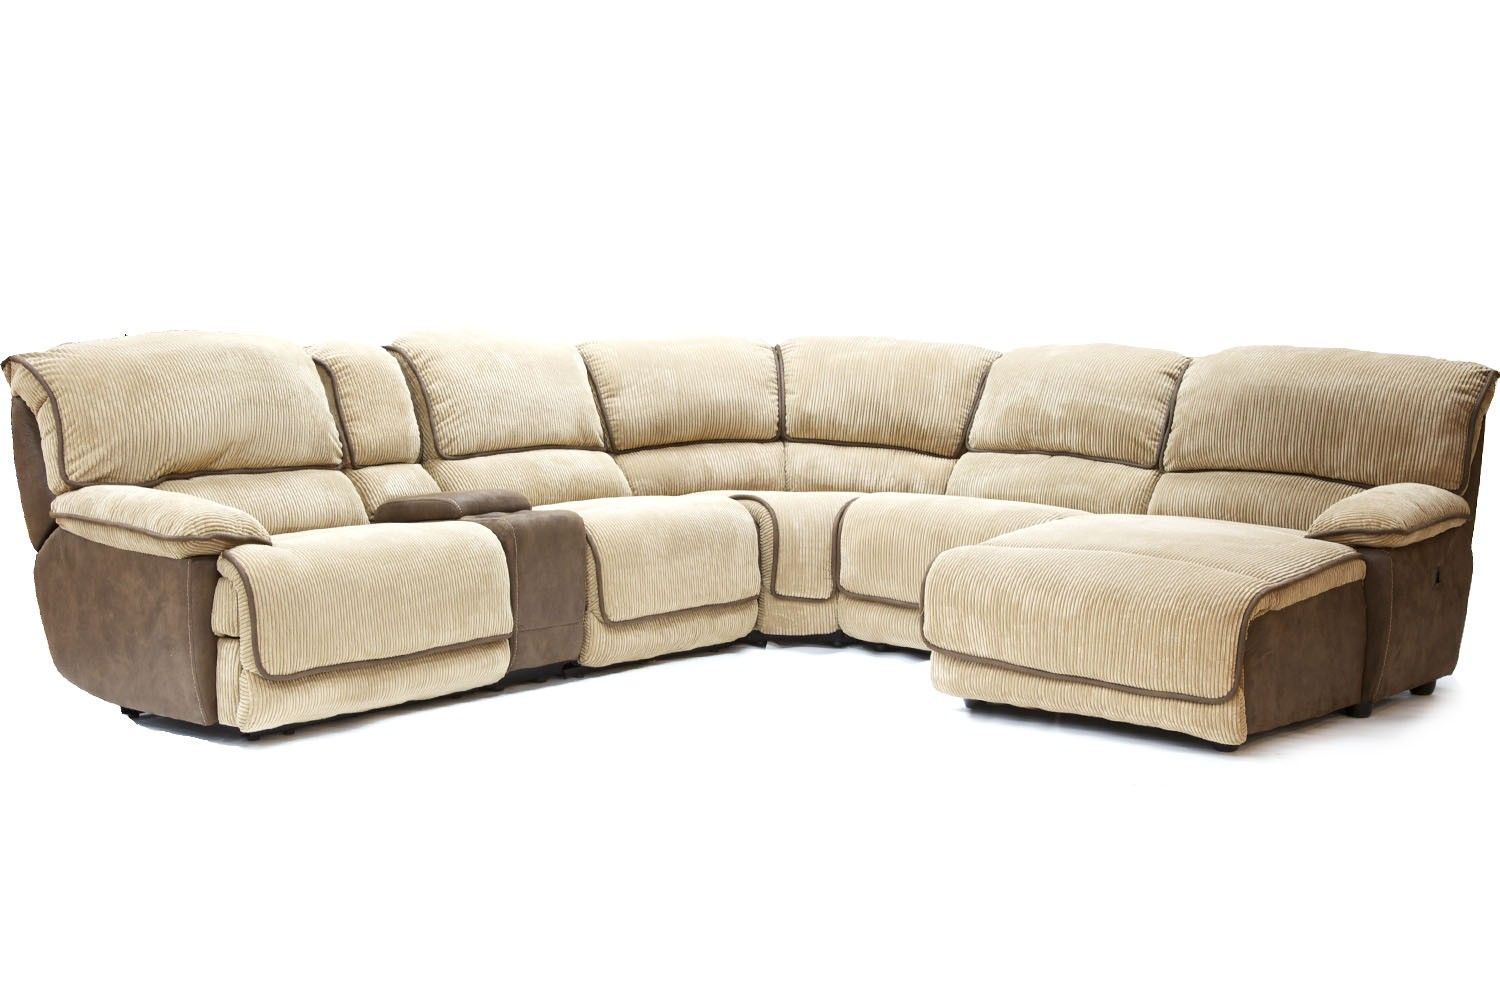 Mor Furniture For Less: The Austin Cafe Reclining Living Room | Mor  Furniture For Less Part 66